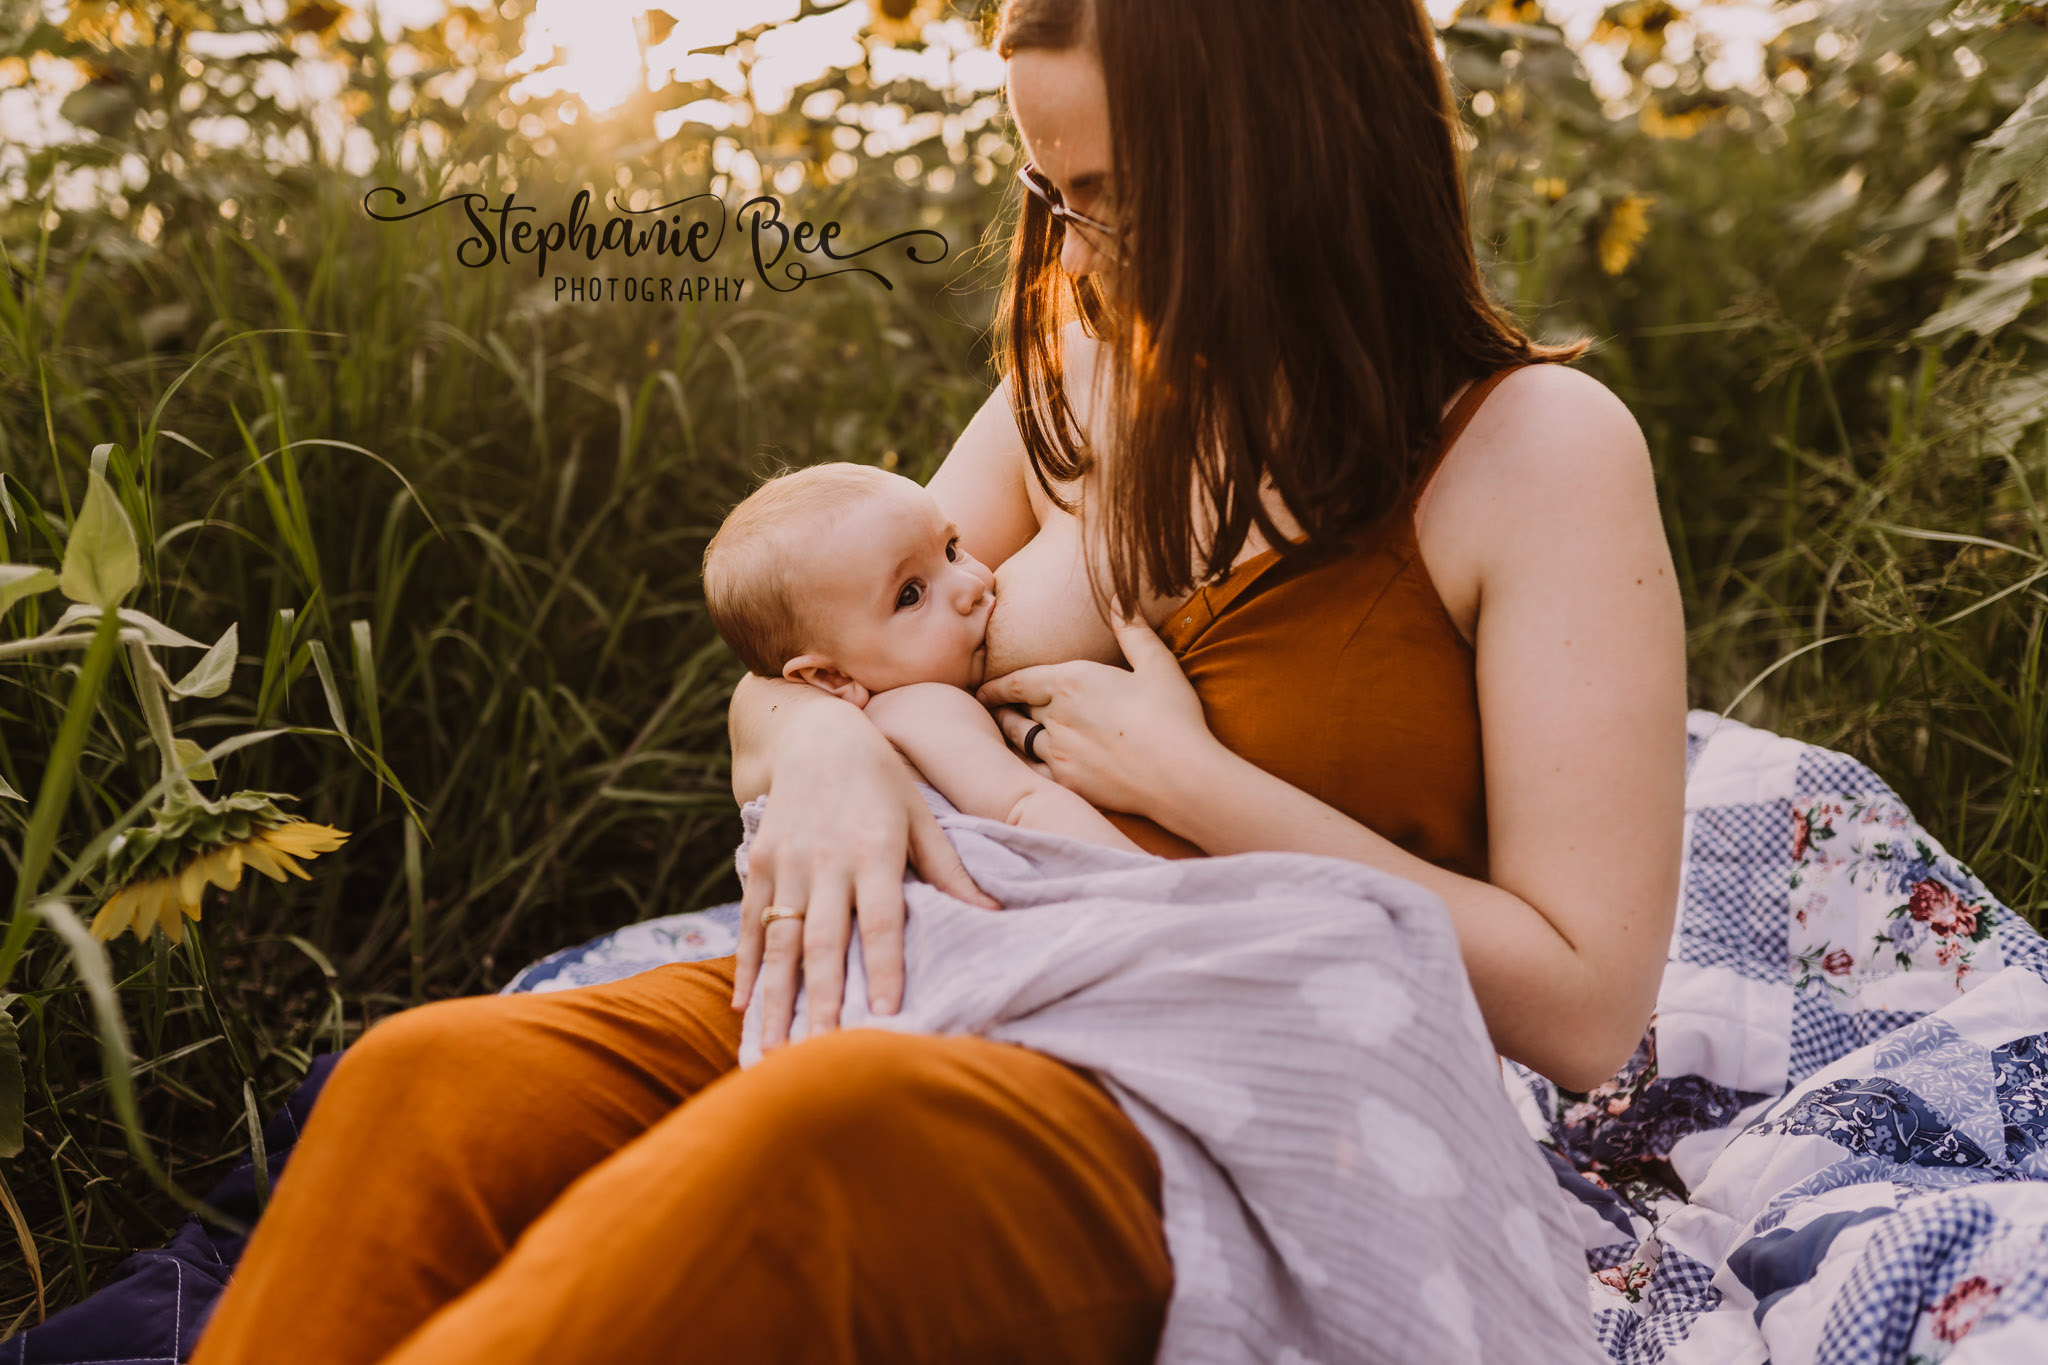 breastfeeding2019_10.jpg